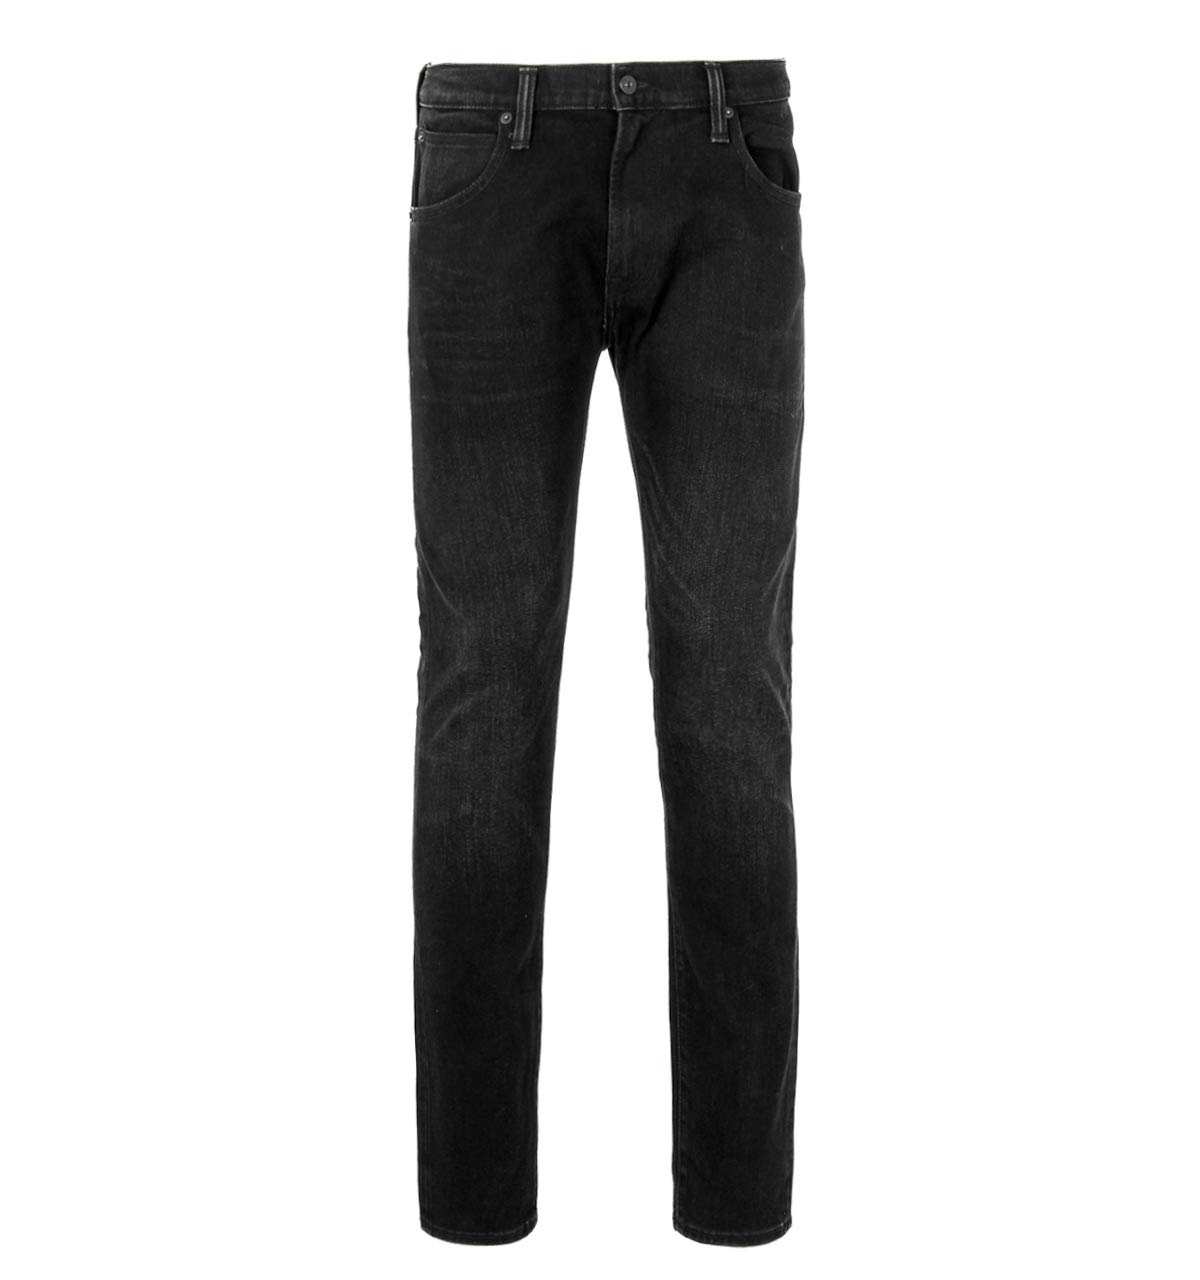 Edwin ED-85 Black Belmont Wash Slim Tapered Drop Crotch Selvage Jeans-38 Waist / 34 Leg